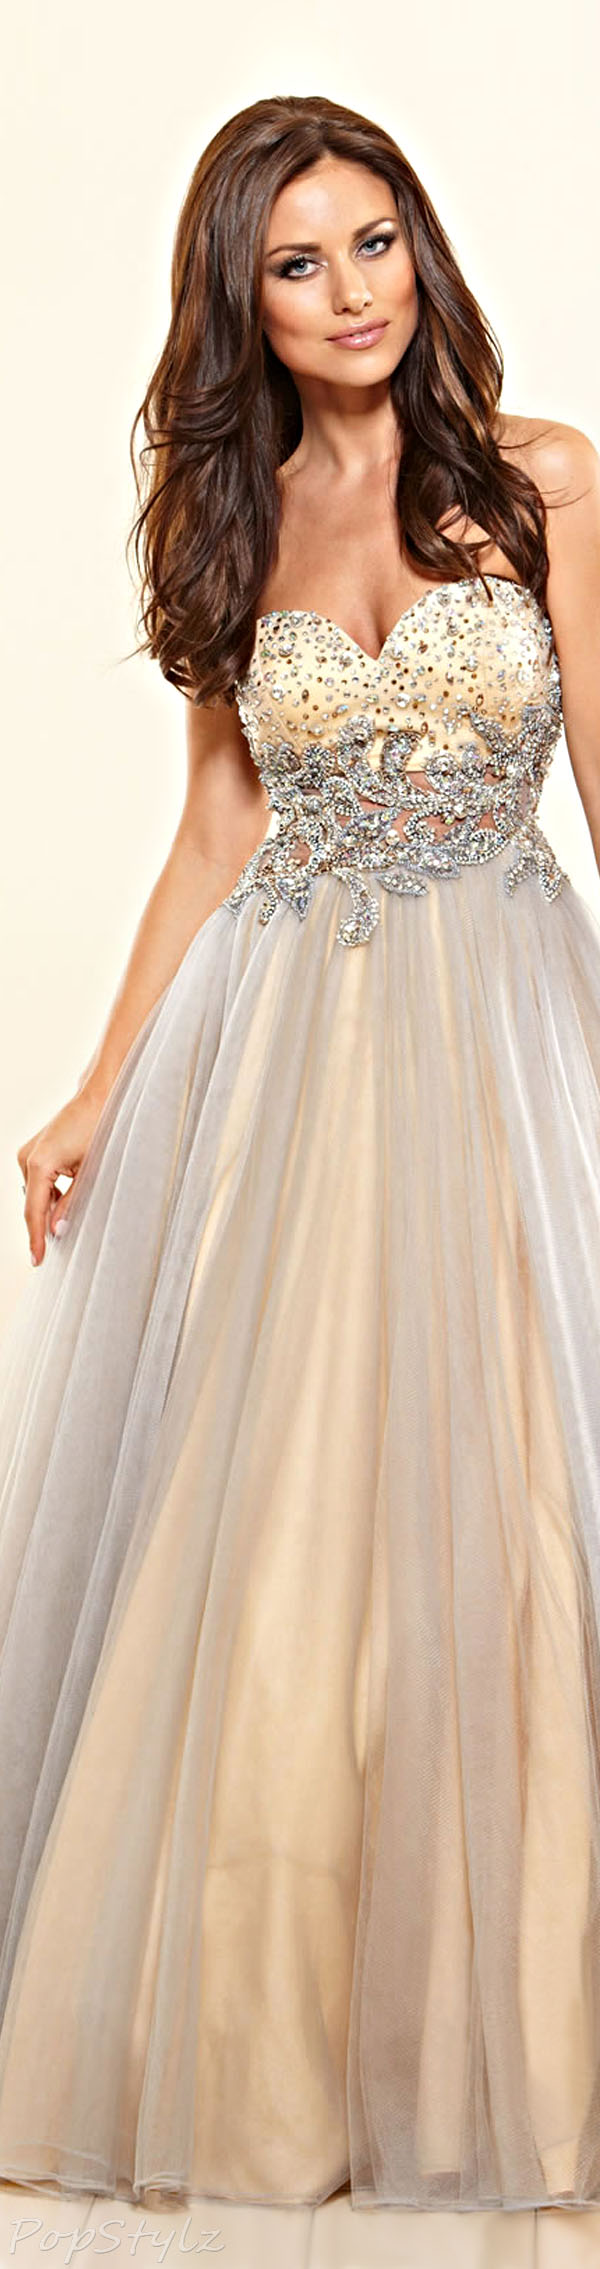 Terani Couture P3089 Evening Gown